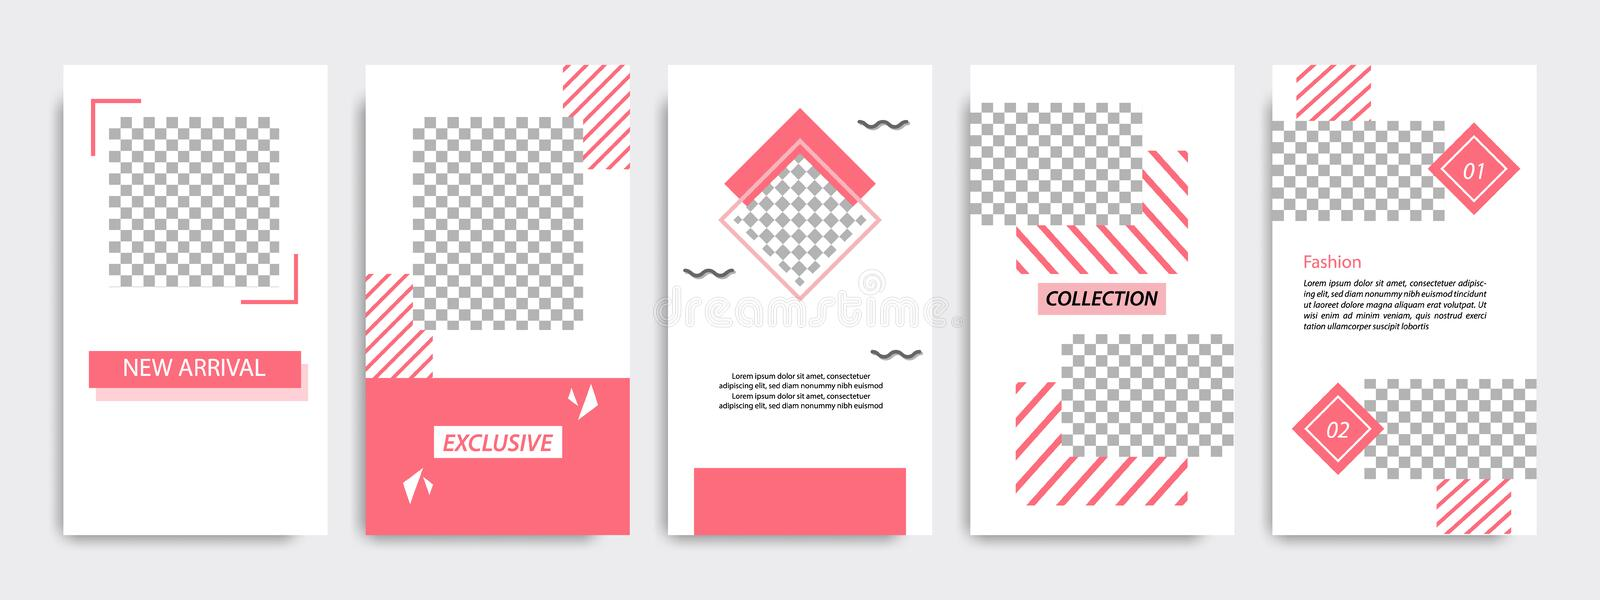 Red minimal geometric Instagram layout banner template. Multipurpose five vertical banner background design template layout. Suitable for Instagram social media stock illustration